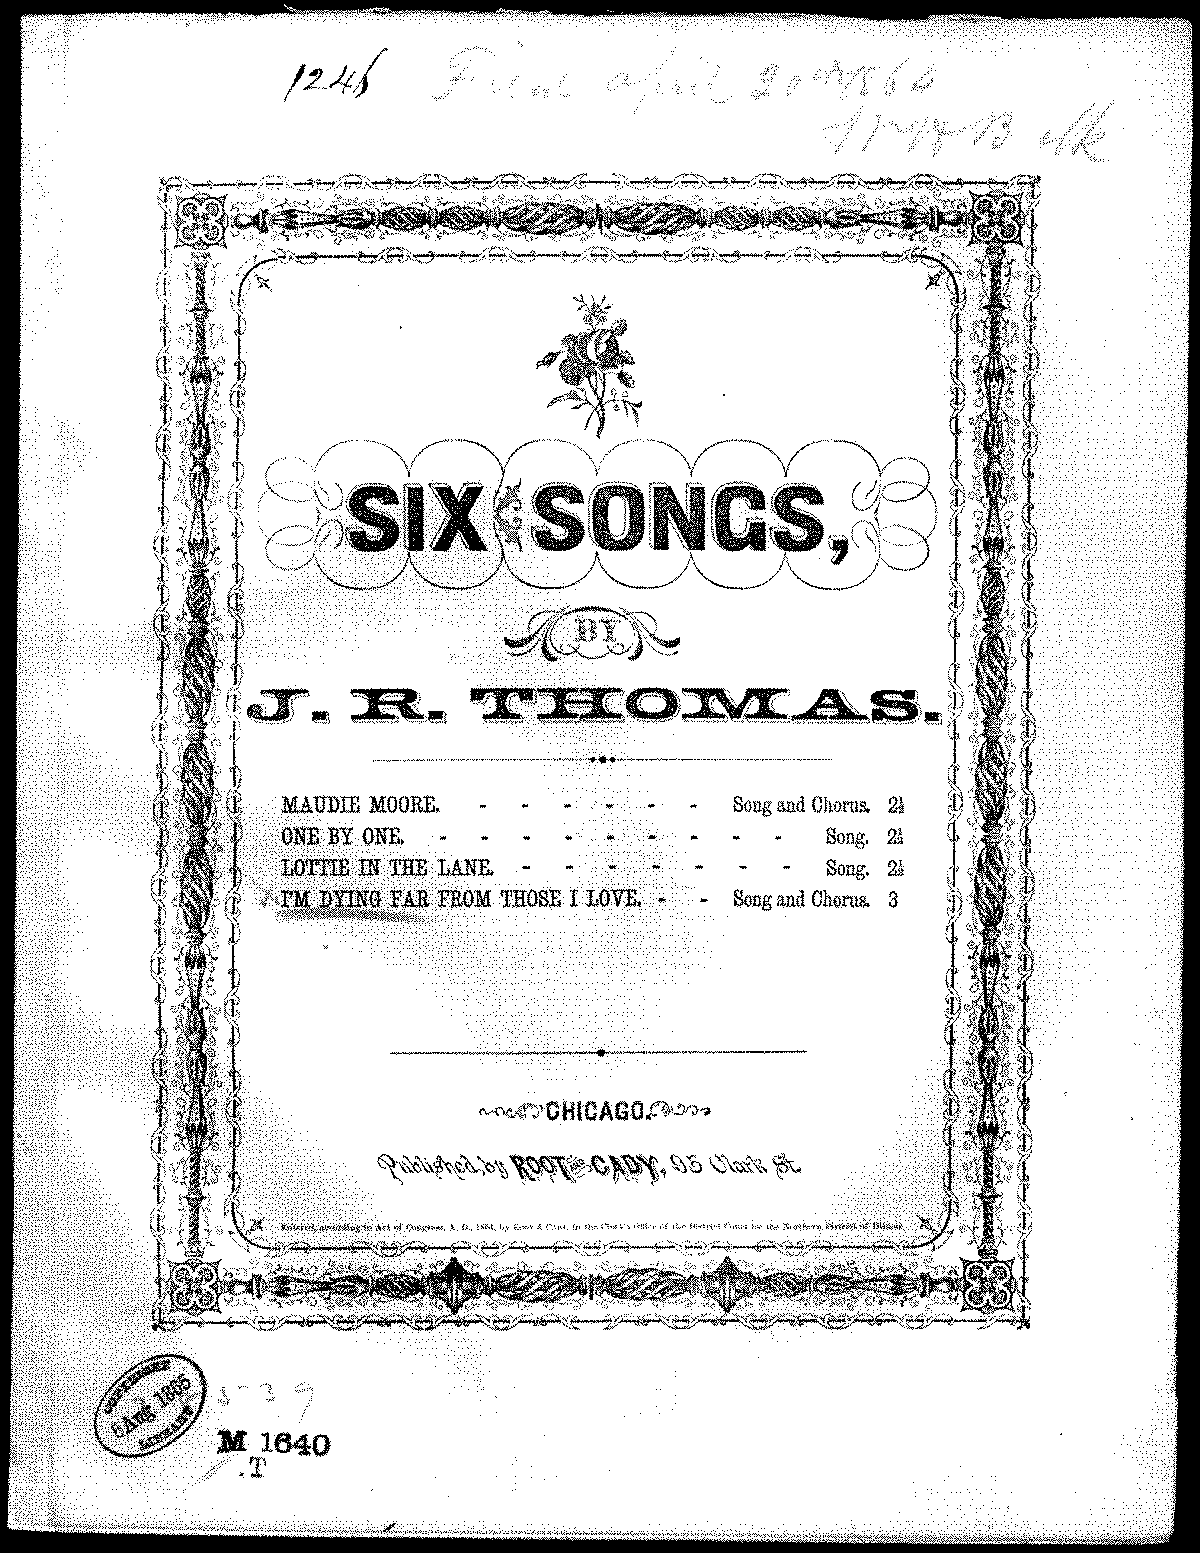 PMLP670368-I'm Dying Far from Those I Love Complete Score 5.pdf